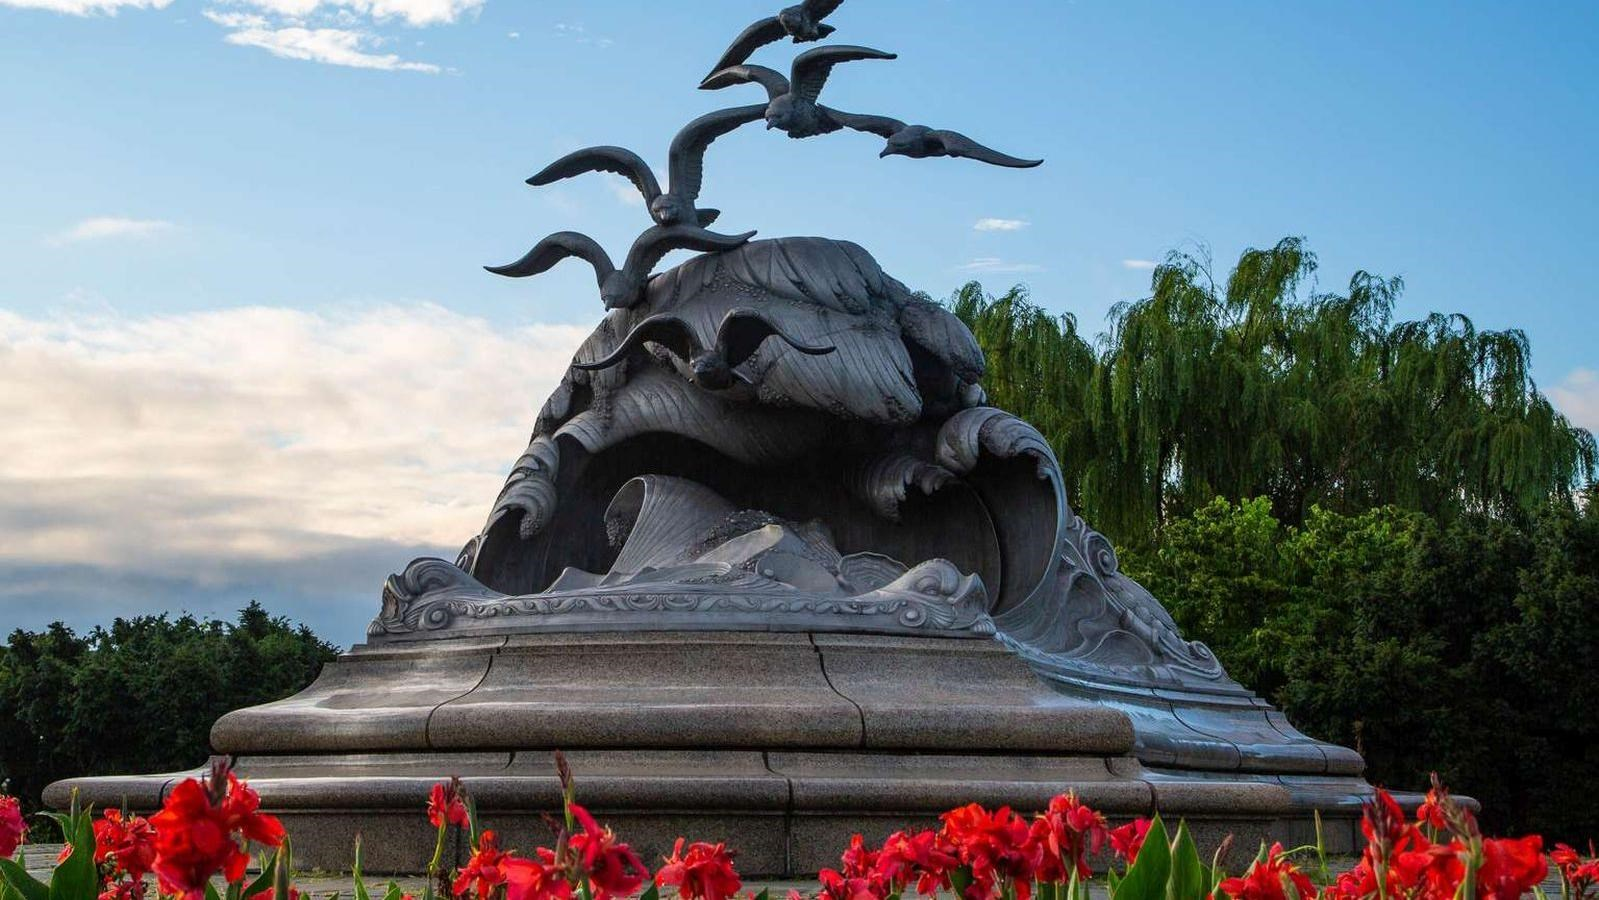 Statue of waves and seagulls surrounded by red flowers